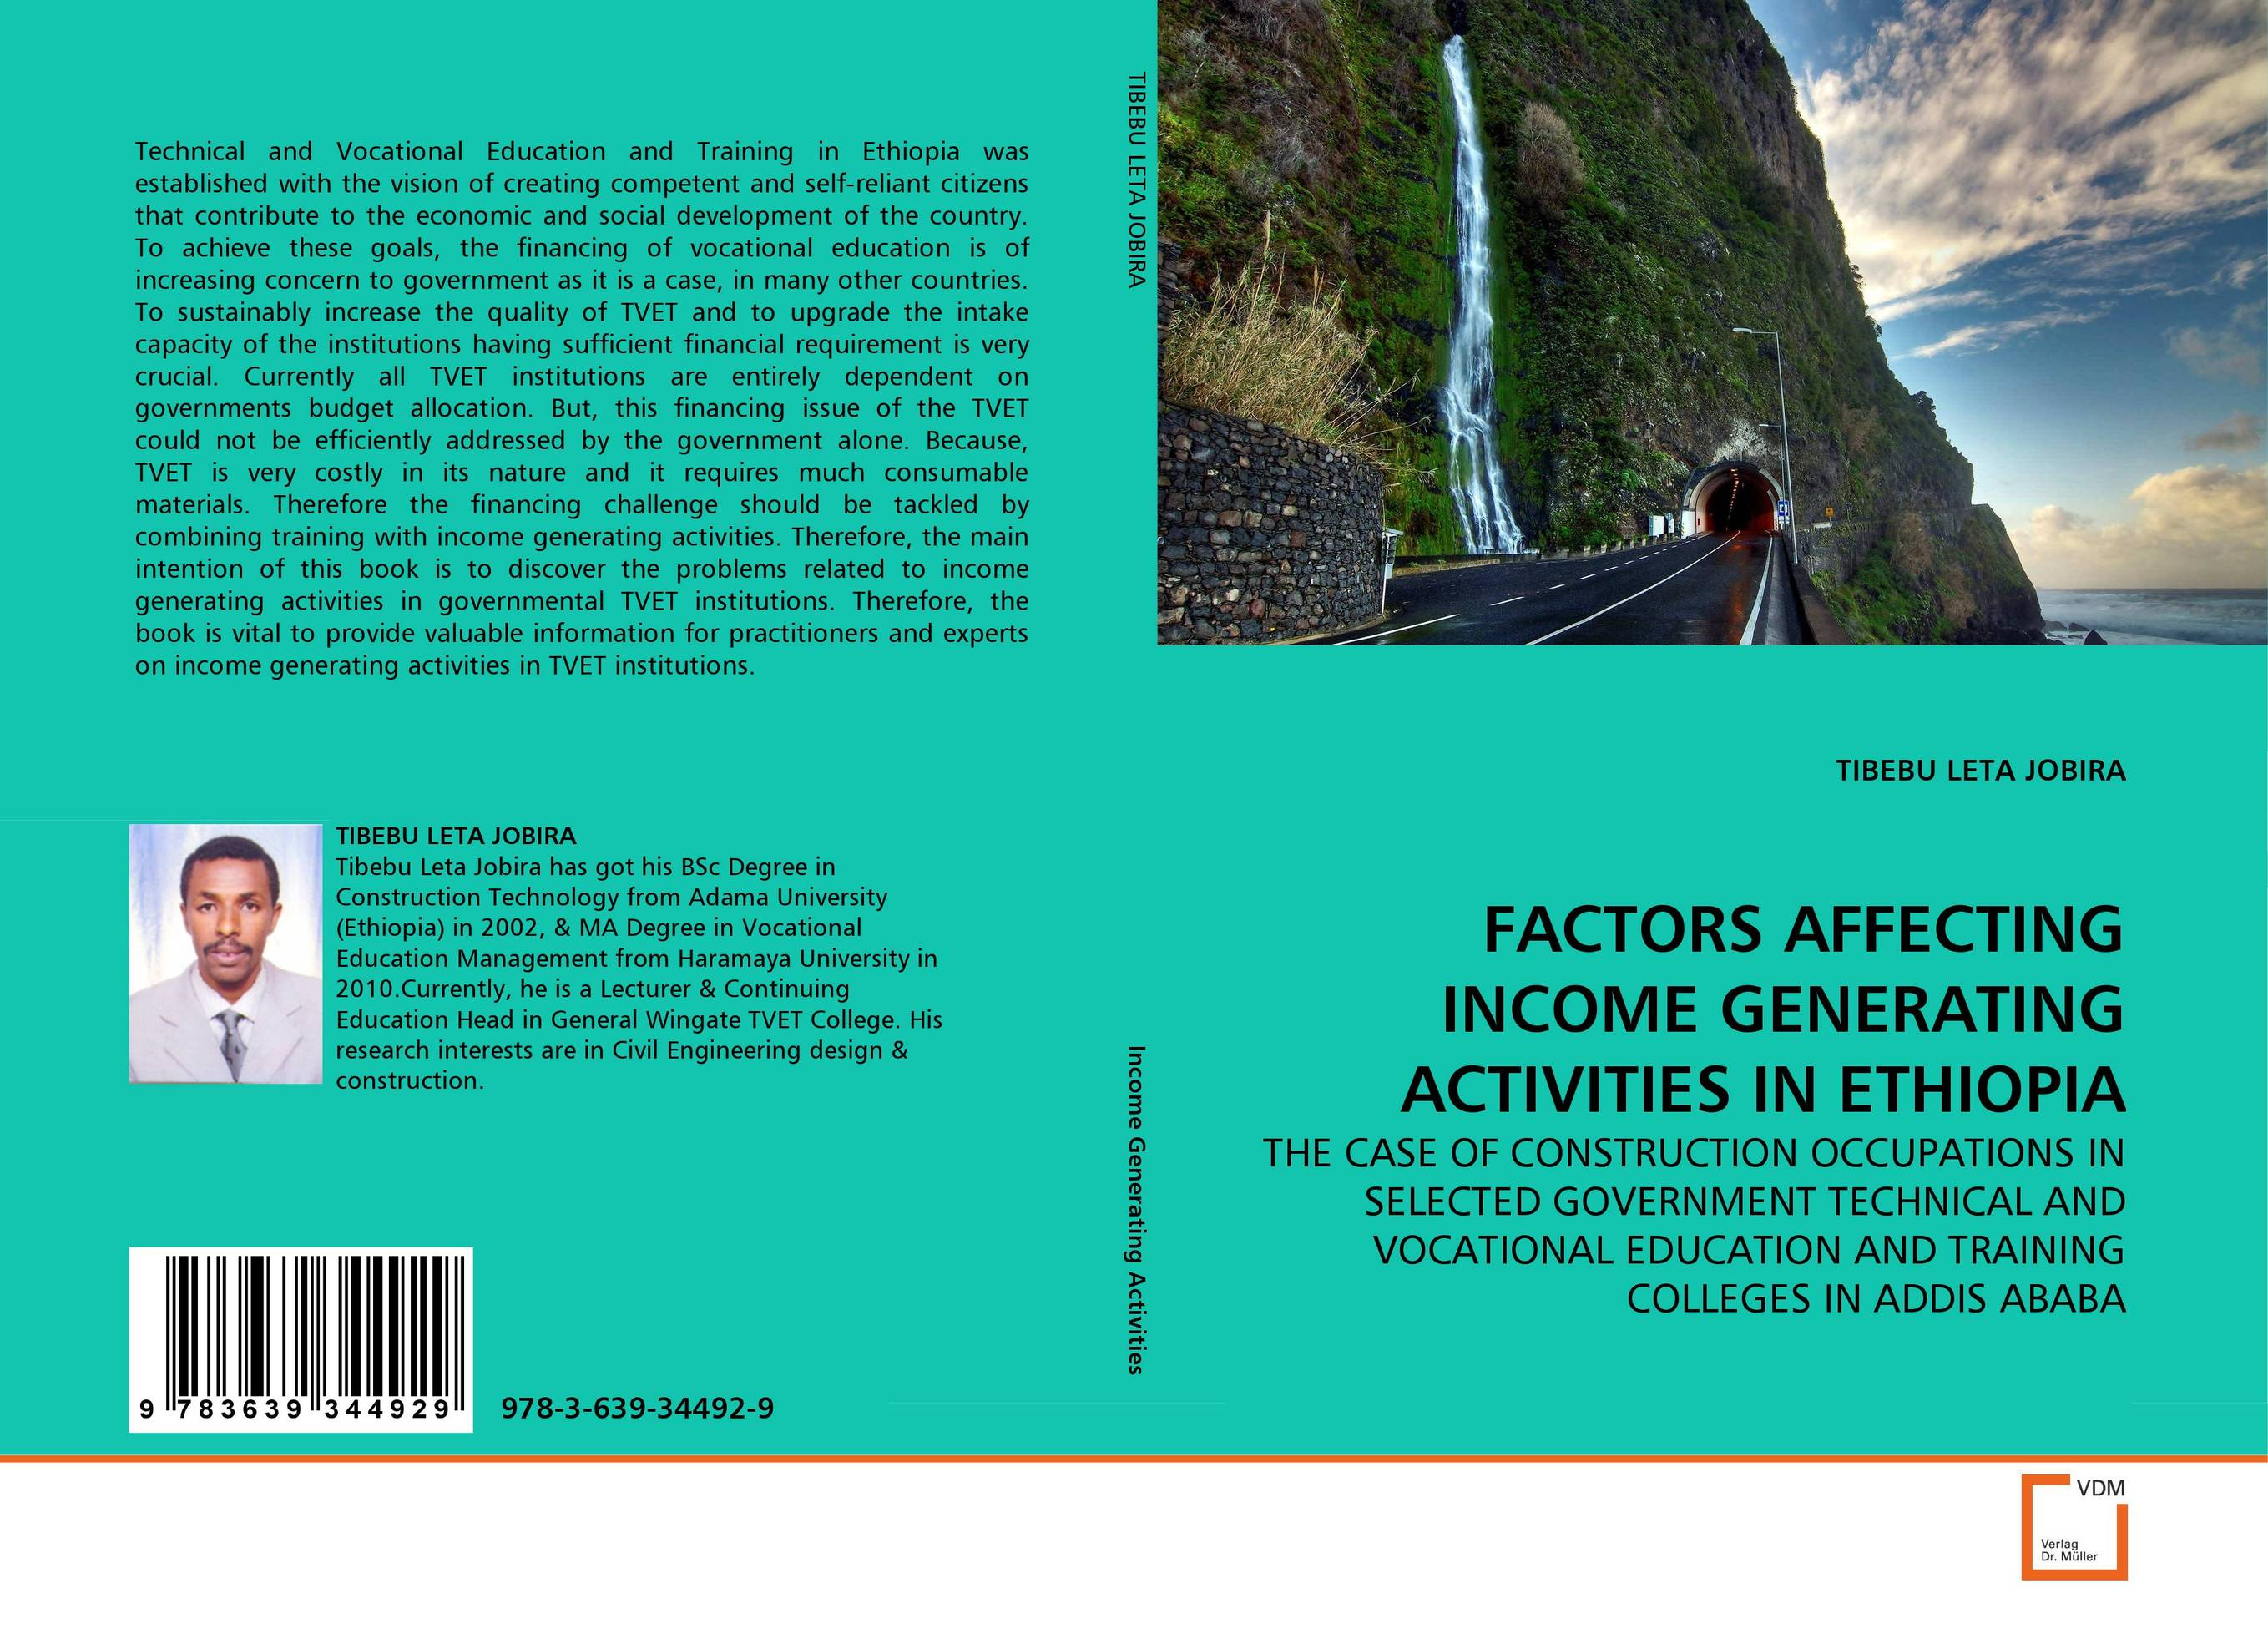 FACTORS AFFECTING INCOME GENERATING ACTIVITIES IN ETHIOPIA kenneth rosen d investing in income properties the big six formula for achieving wealth in real estate